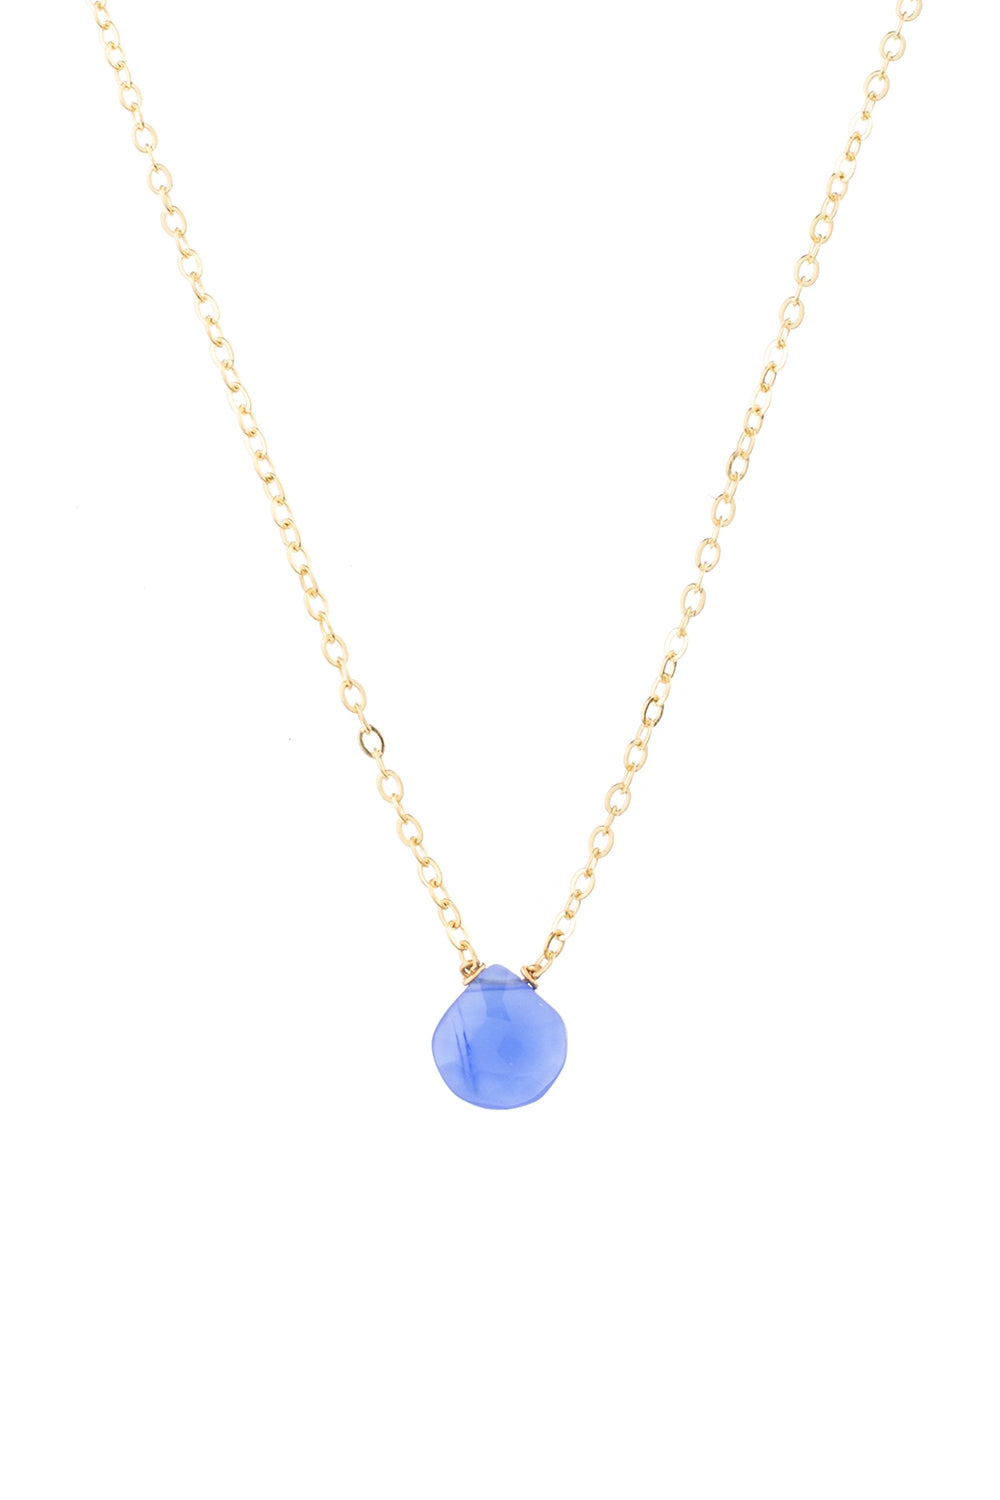 Type 1 Luxurious Sapphire Necklace